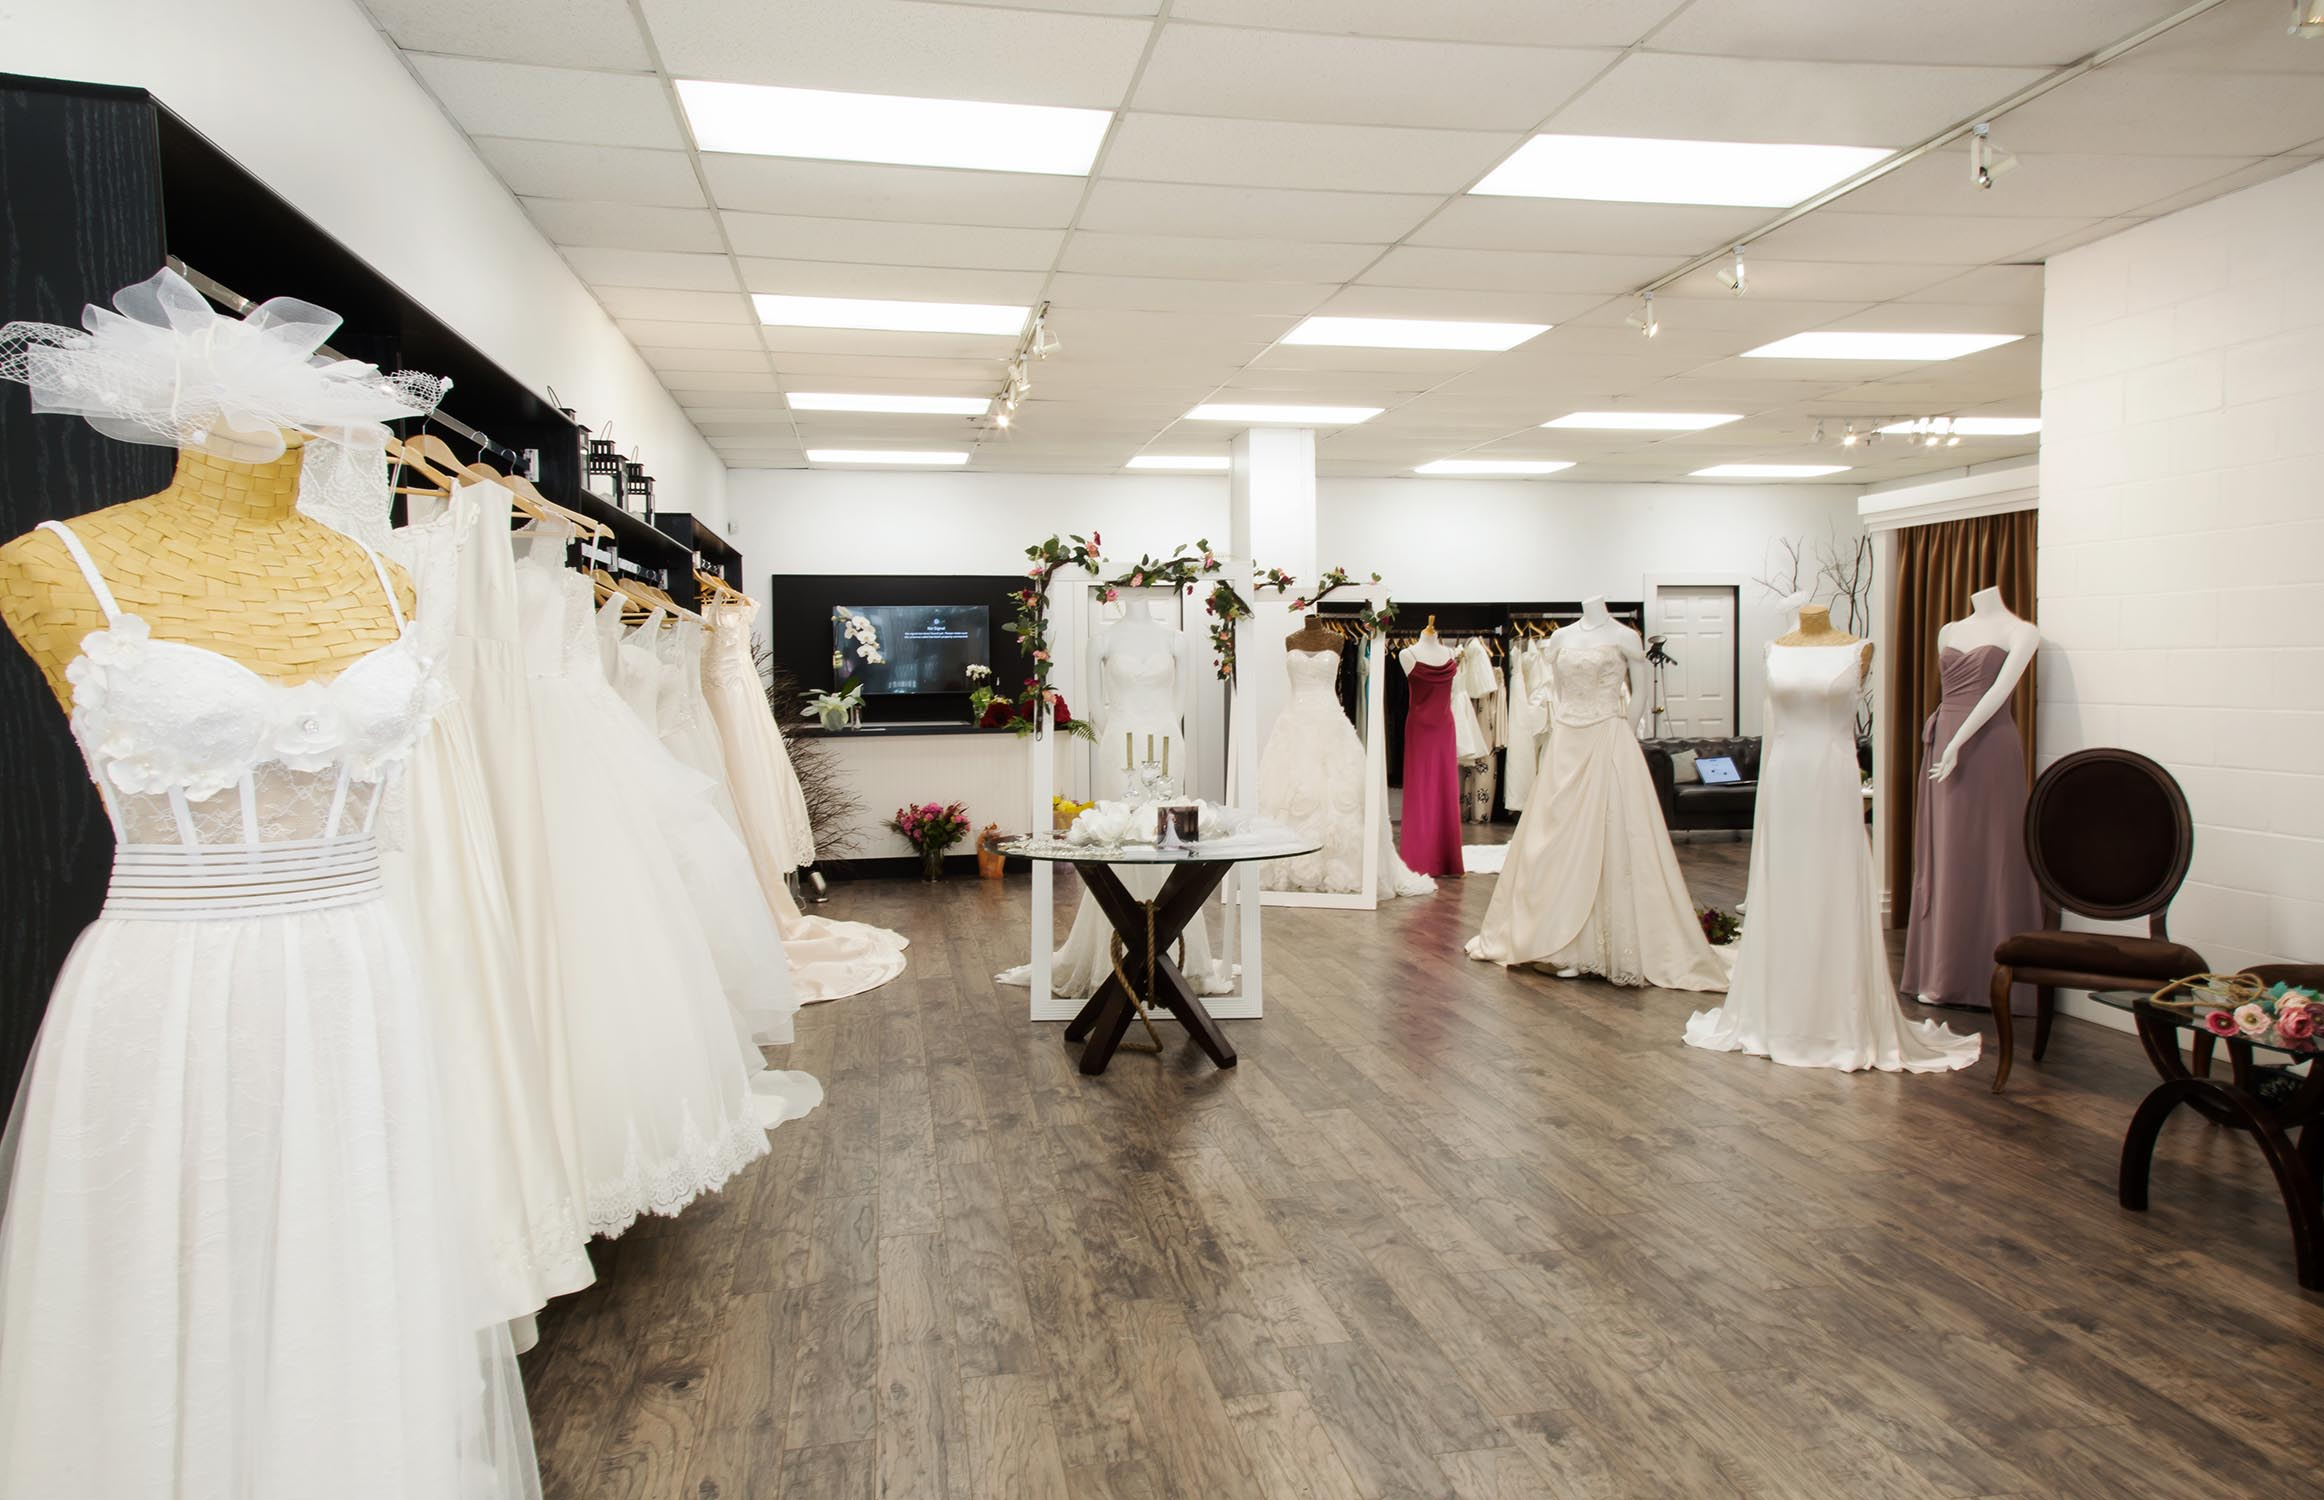 Picture of the interior of the Alma Bridal store showing a wide variety of custom wedding dresses and evening gowns.